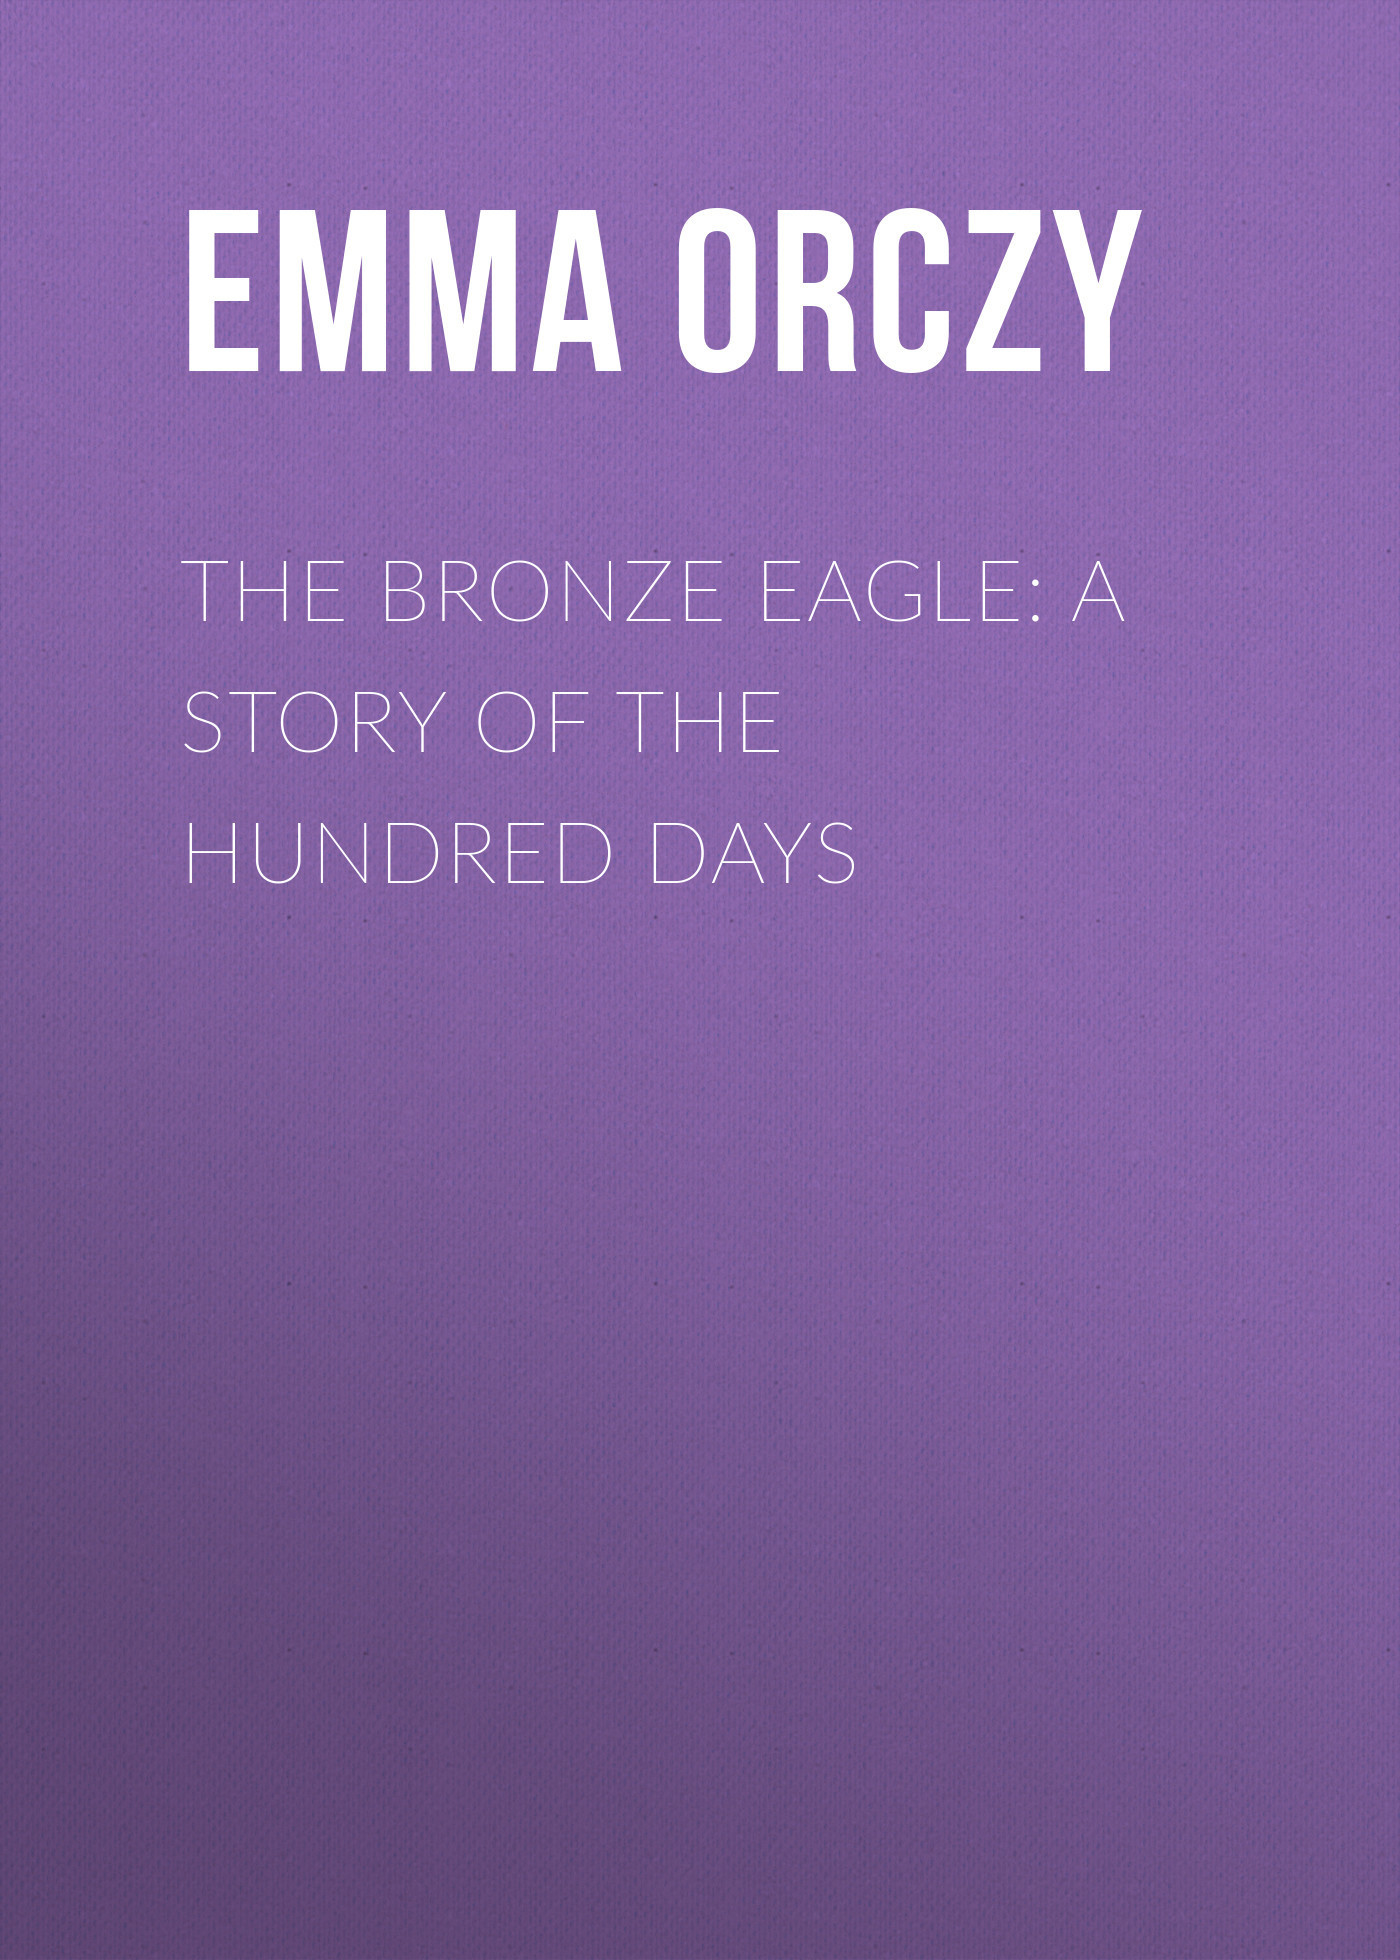 Emma Orczy The Bronze Eagle: A Story of the Hundred Days пальто alix story alix story mp002xw13vur